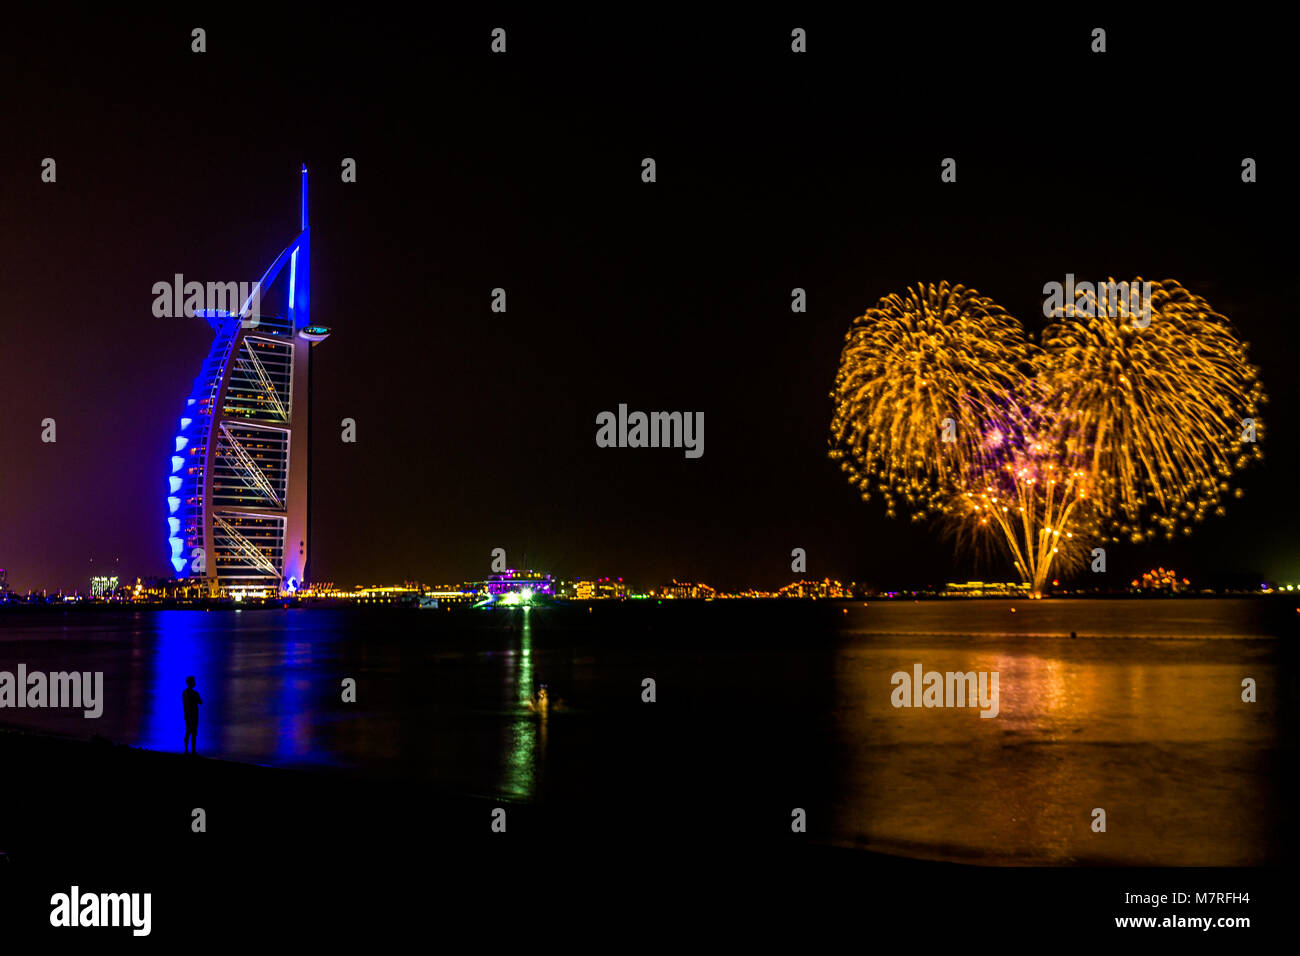 Dubai/UAE- Nov 17 2017: Burj Al Arab in Dubai at night Stock Photo